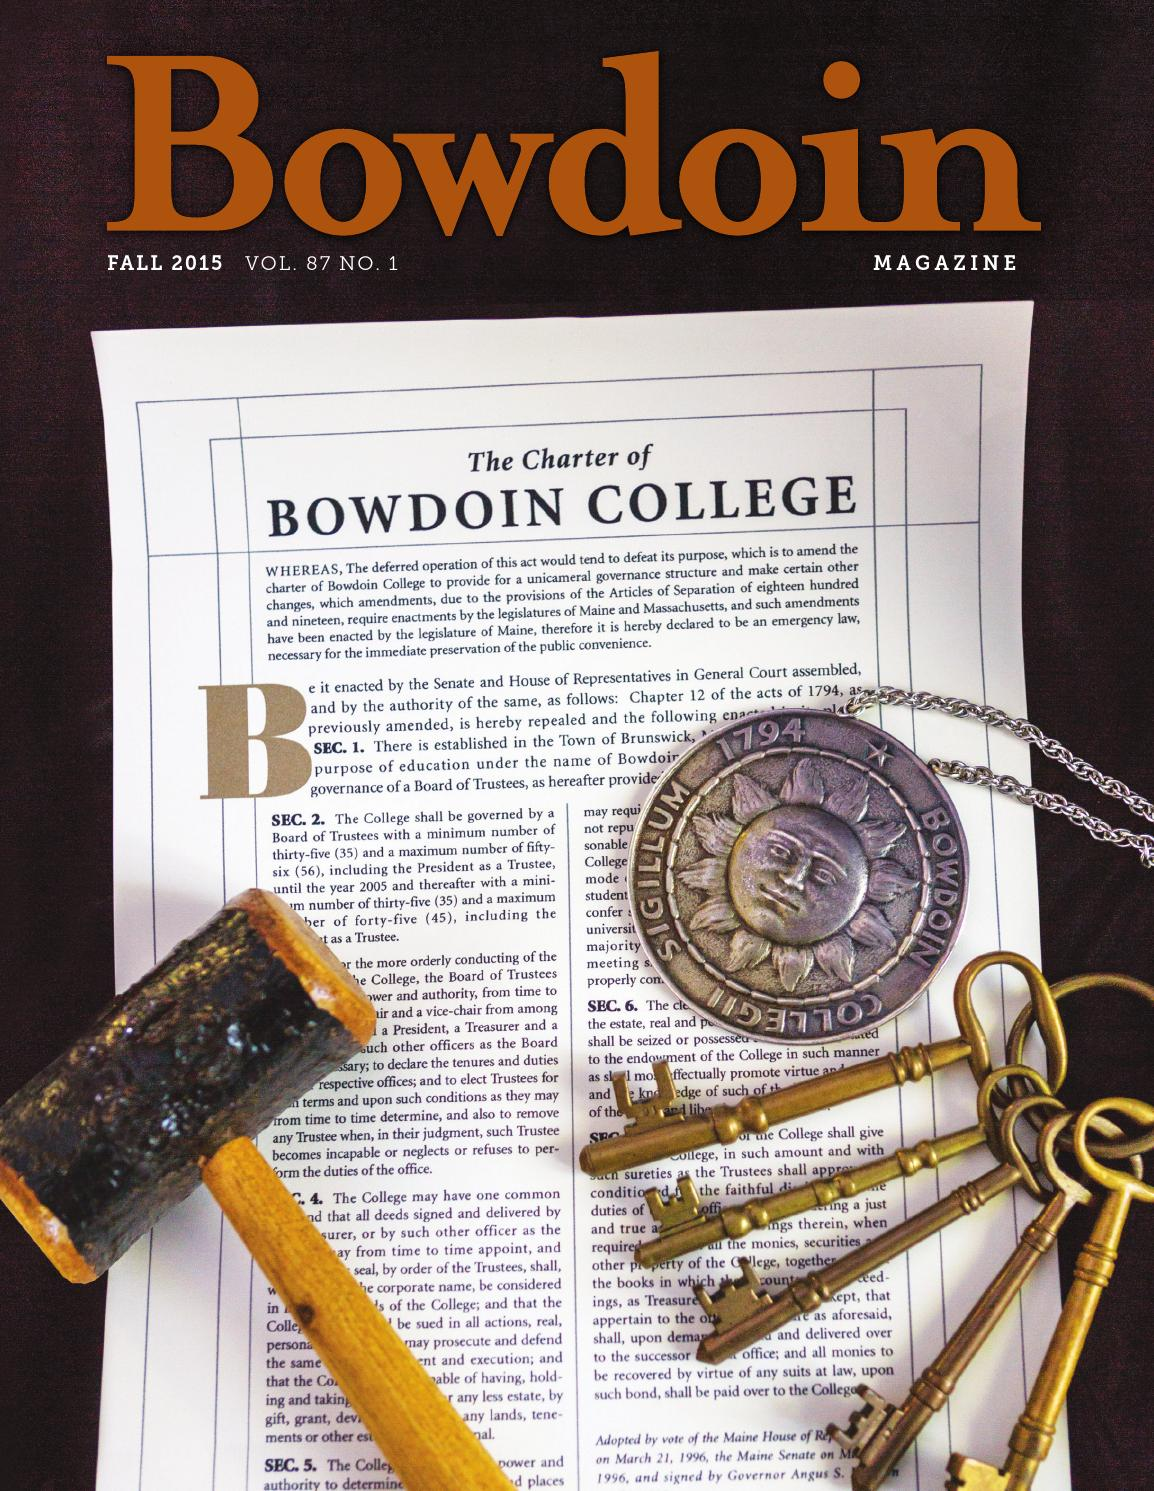 bowdoin prize for undergraduate essays in the natural sciences Press releases media who is also higgins professor of natural sciences in the harvard who also won a 2010 bowdoin prize for undergraduate essays in the.